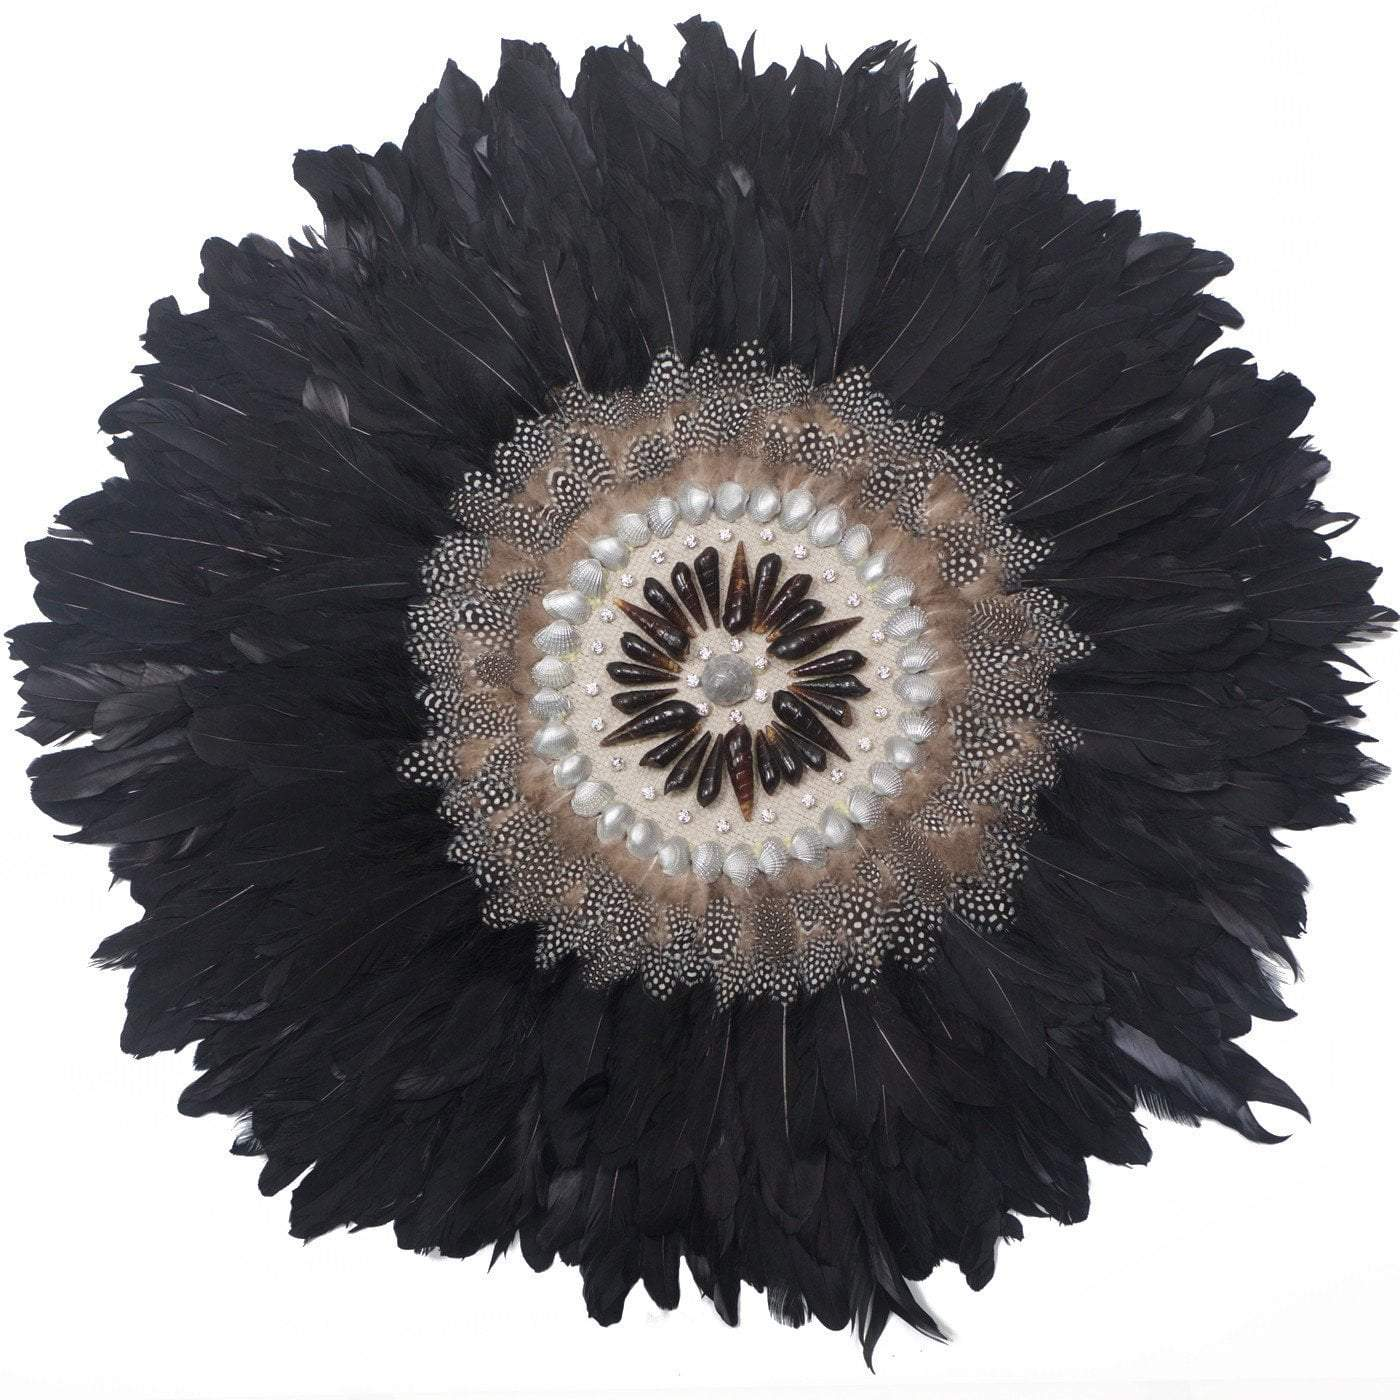 Feather Kubo Black Artwork 67cm x 85cm